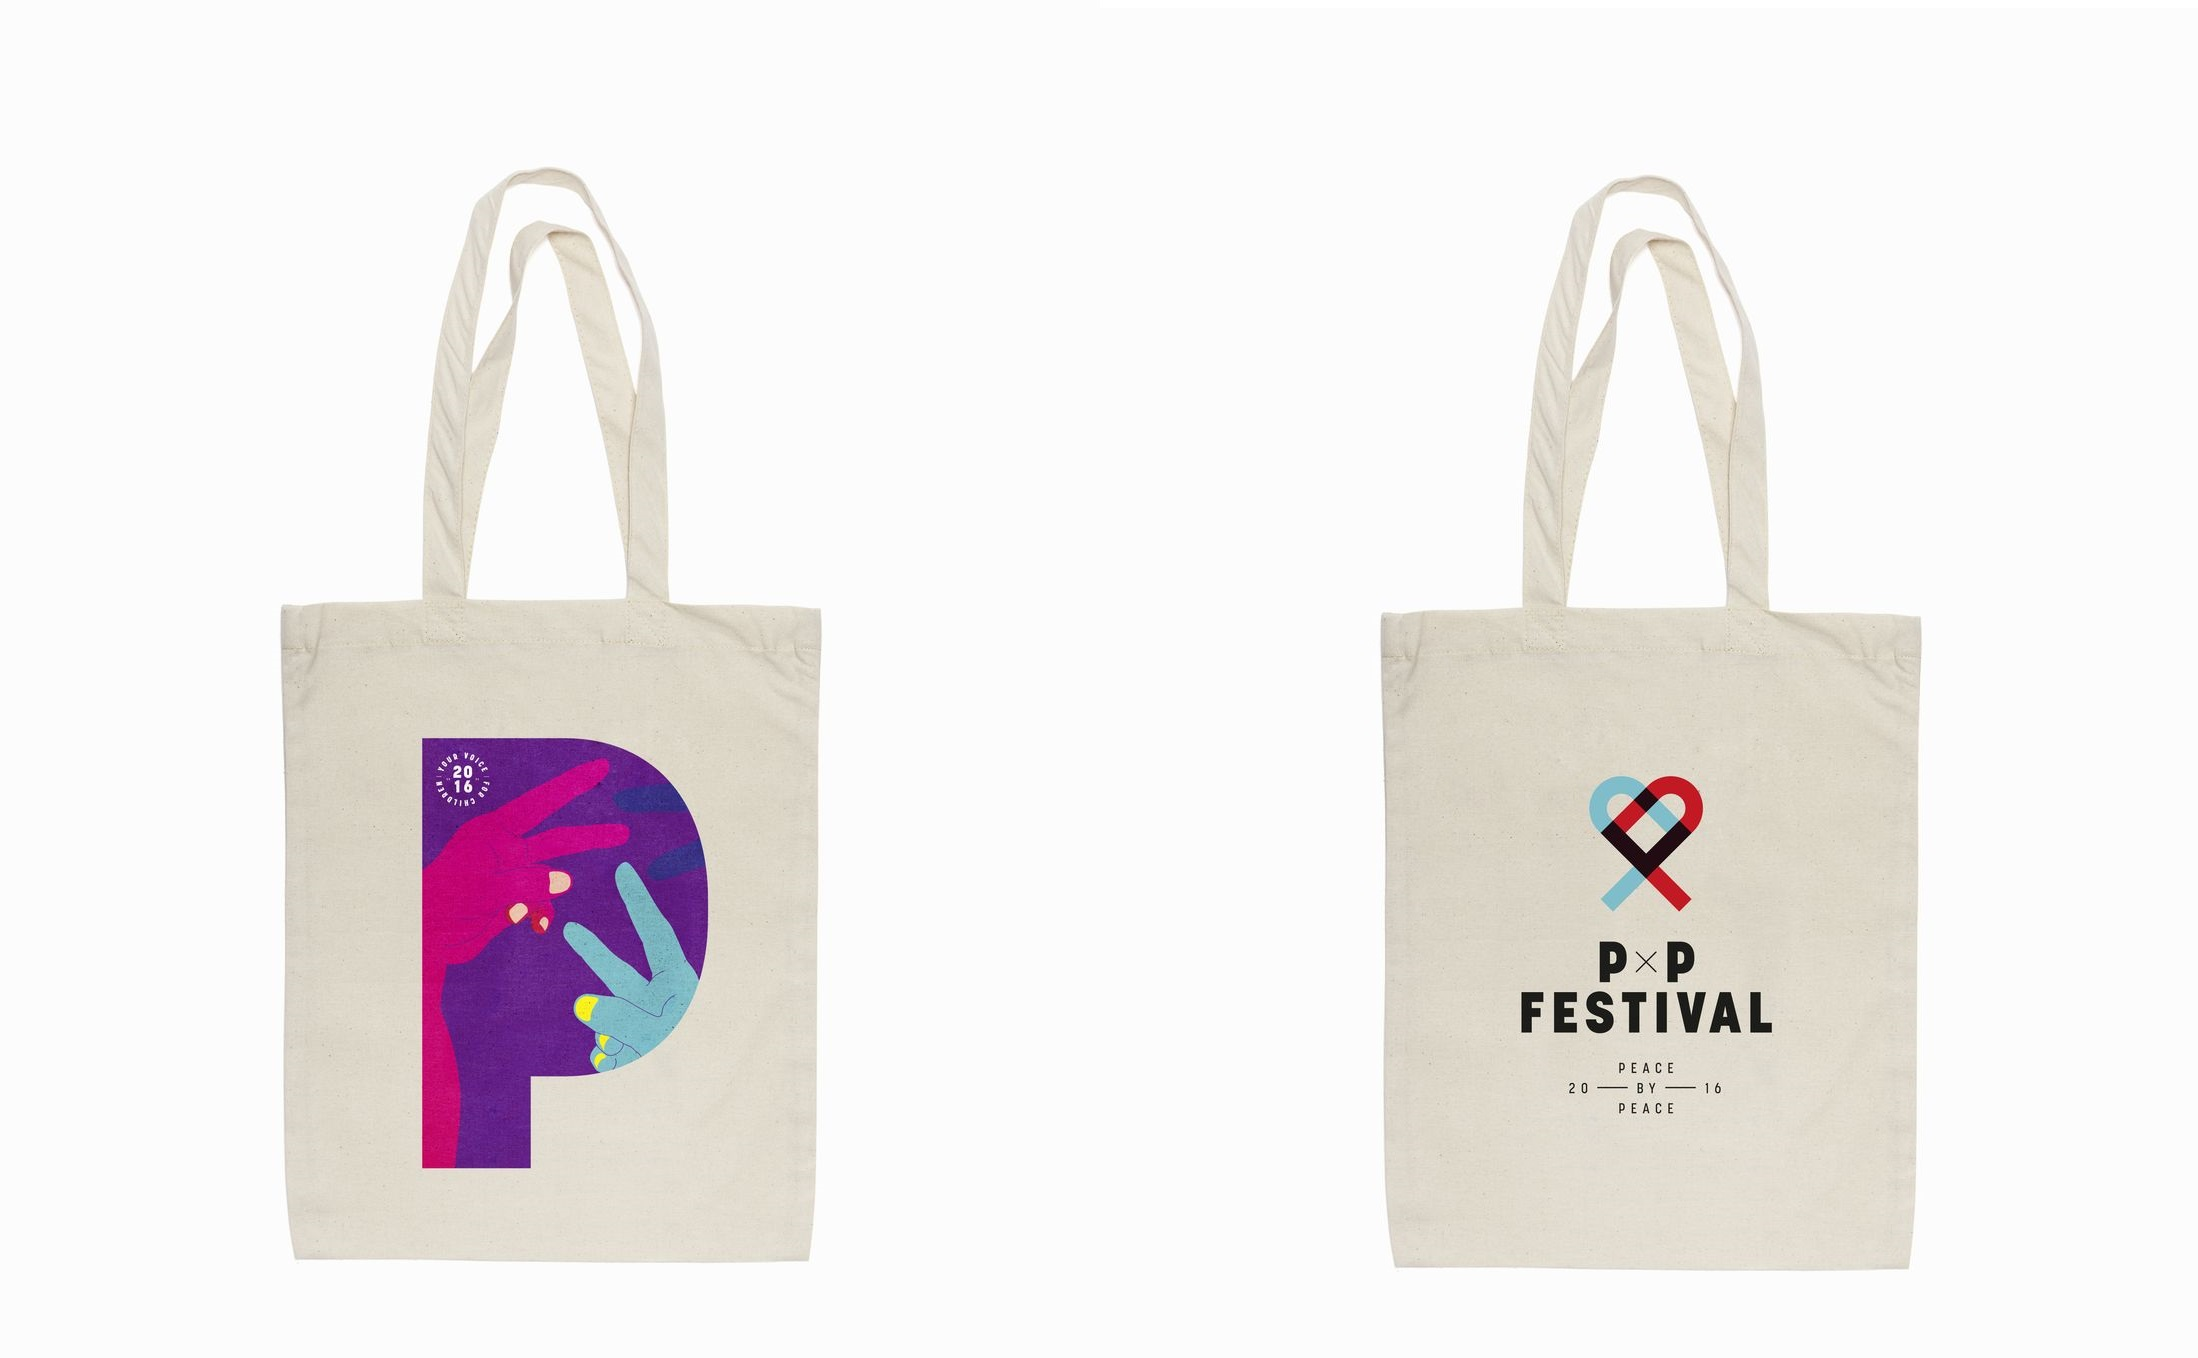 P x P Festival tote bags by Timezone.